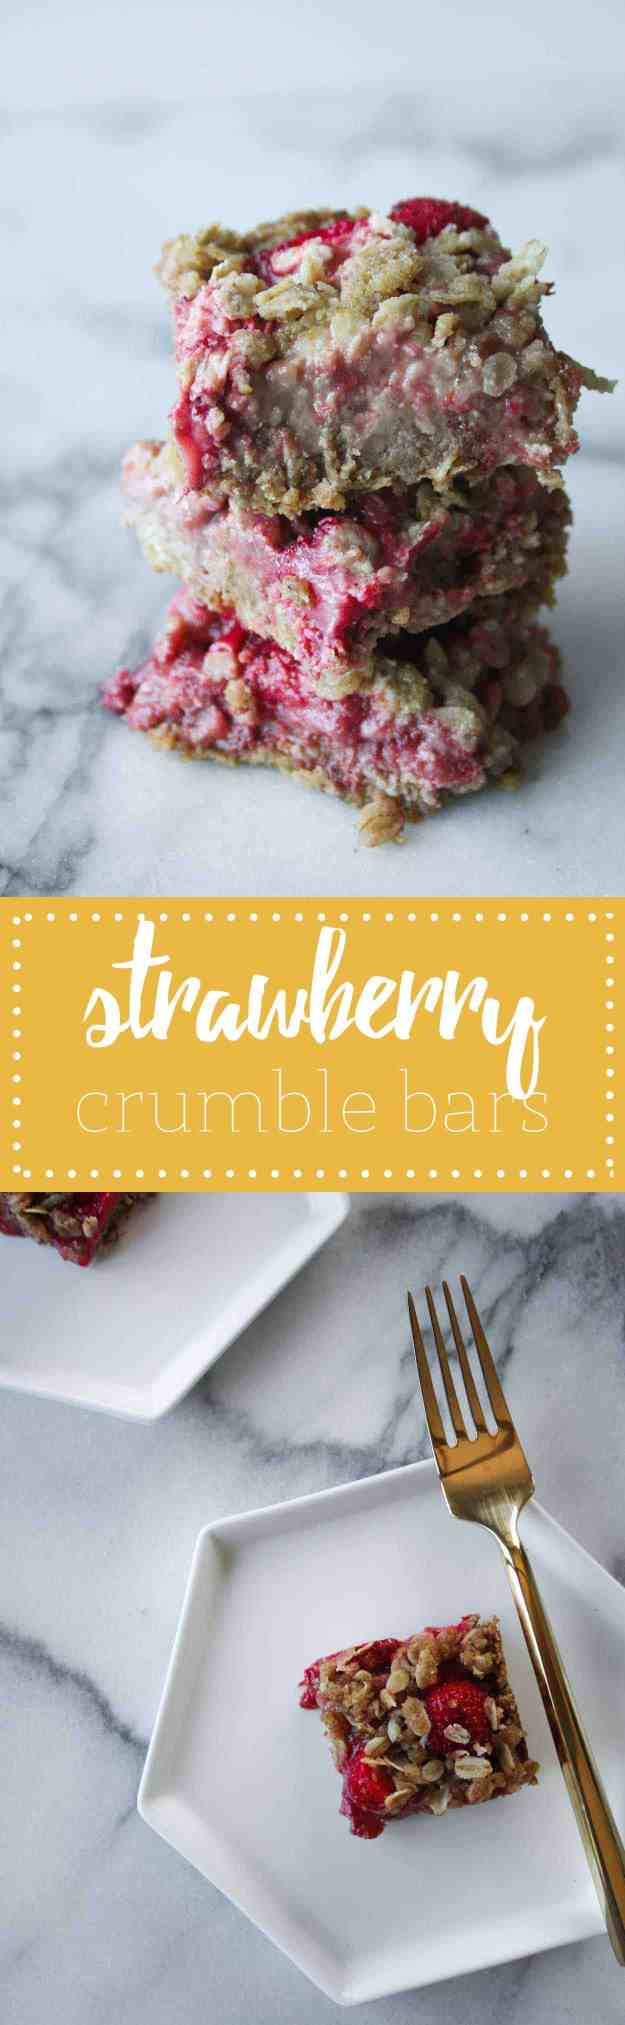 Strawberry Crumble Bars - the perfect easy and healthy weeknight dessert! | hungrybynature.com